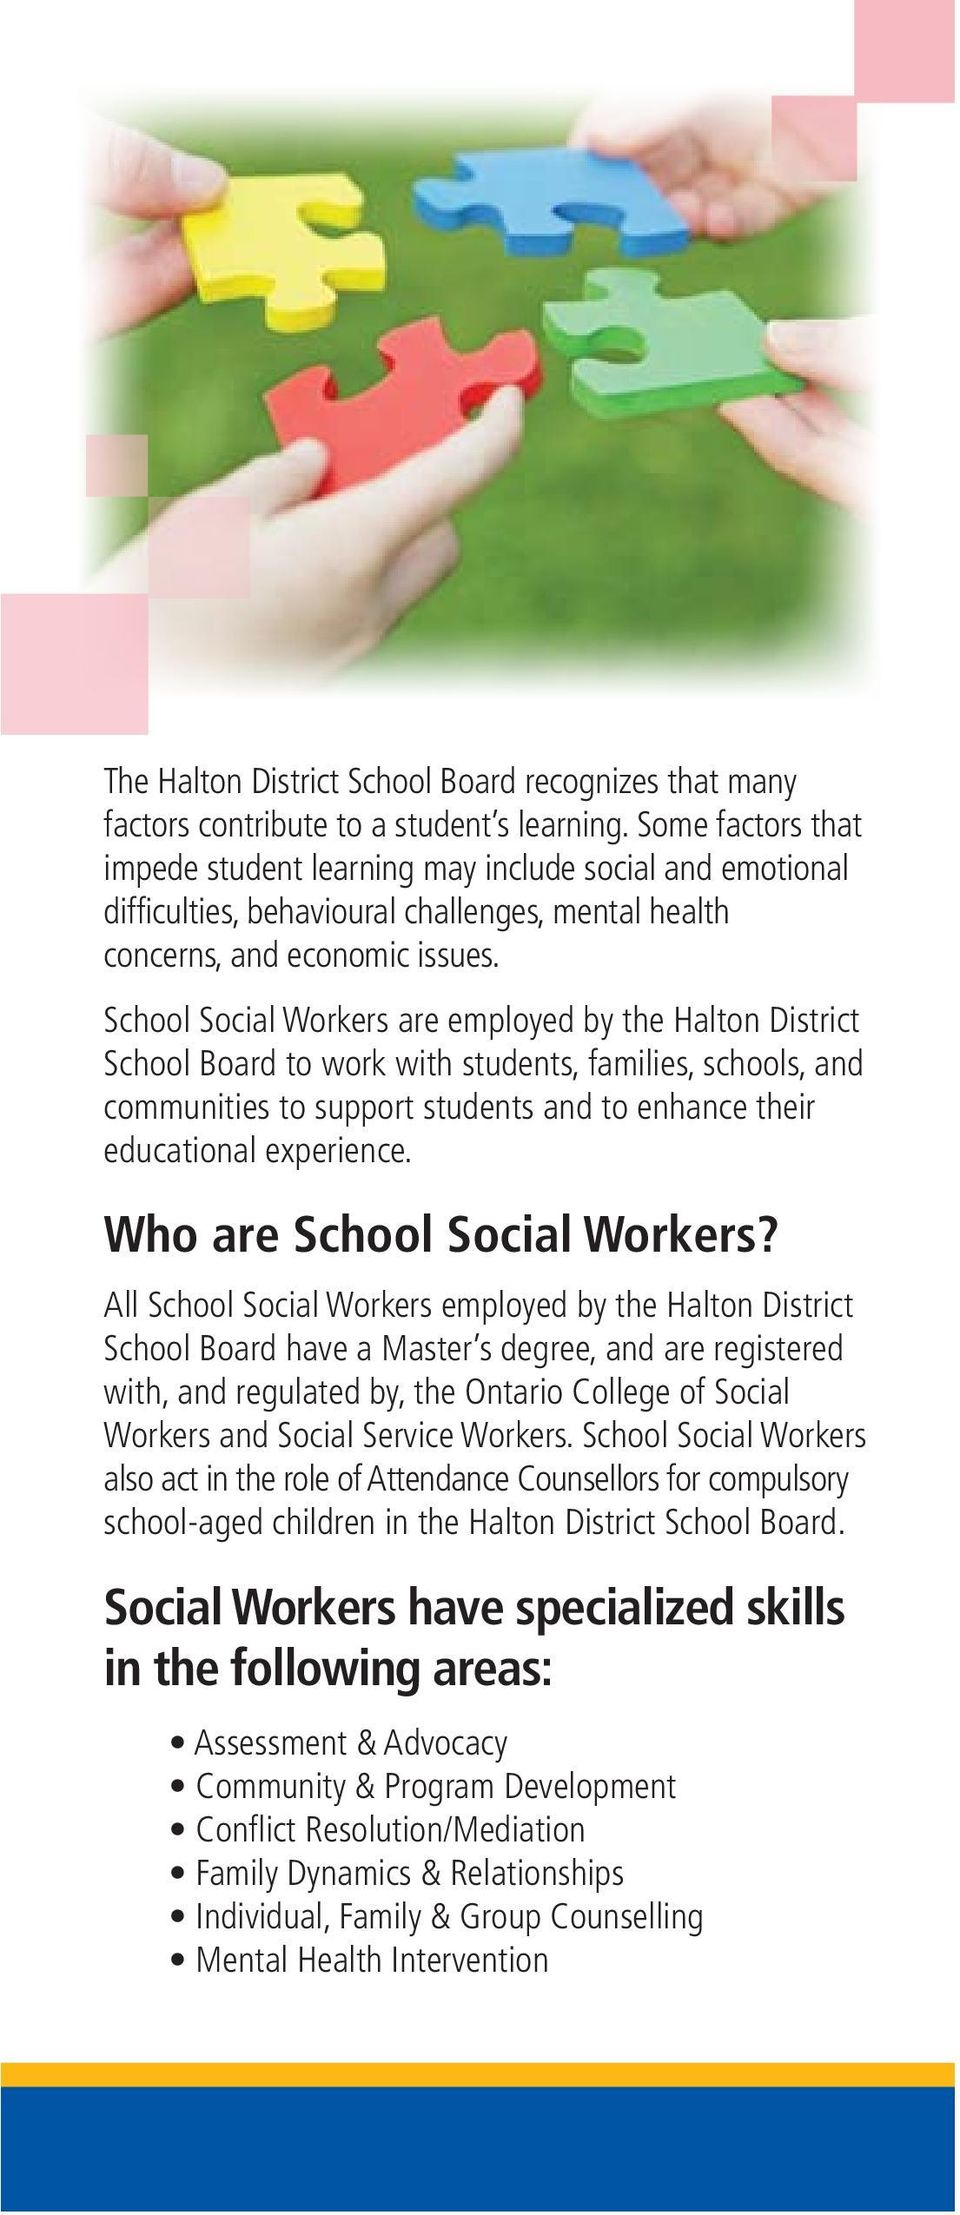 School Social Workers are employed by the Halton District School Board to work with students, families, schools, and communities to support students and to enhance their educational experience.